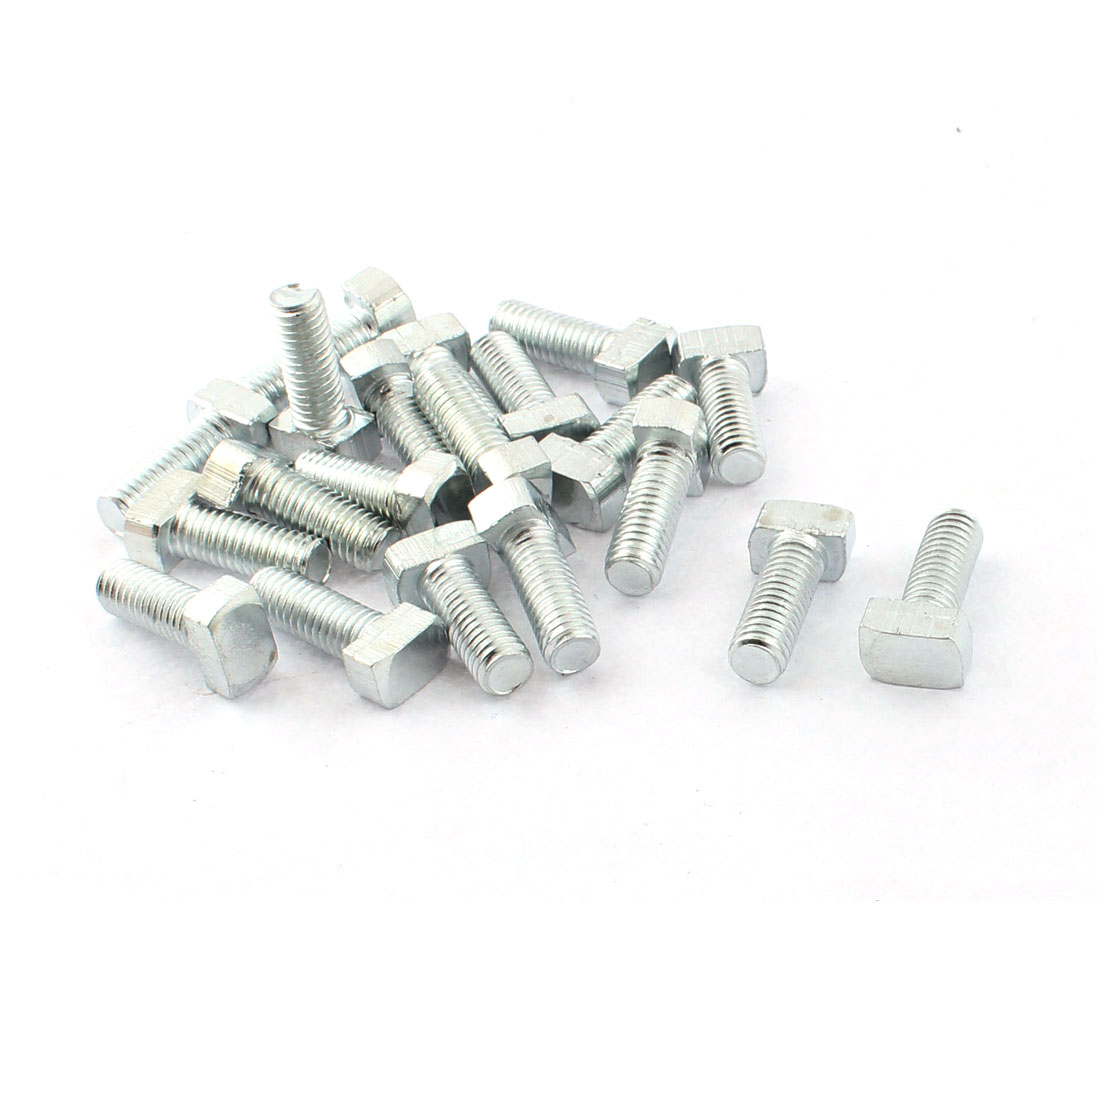 M6 x 16mm 30 Series Hammer Head Metal T-bolt T Bolt Screw Silver Tone 20pcs